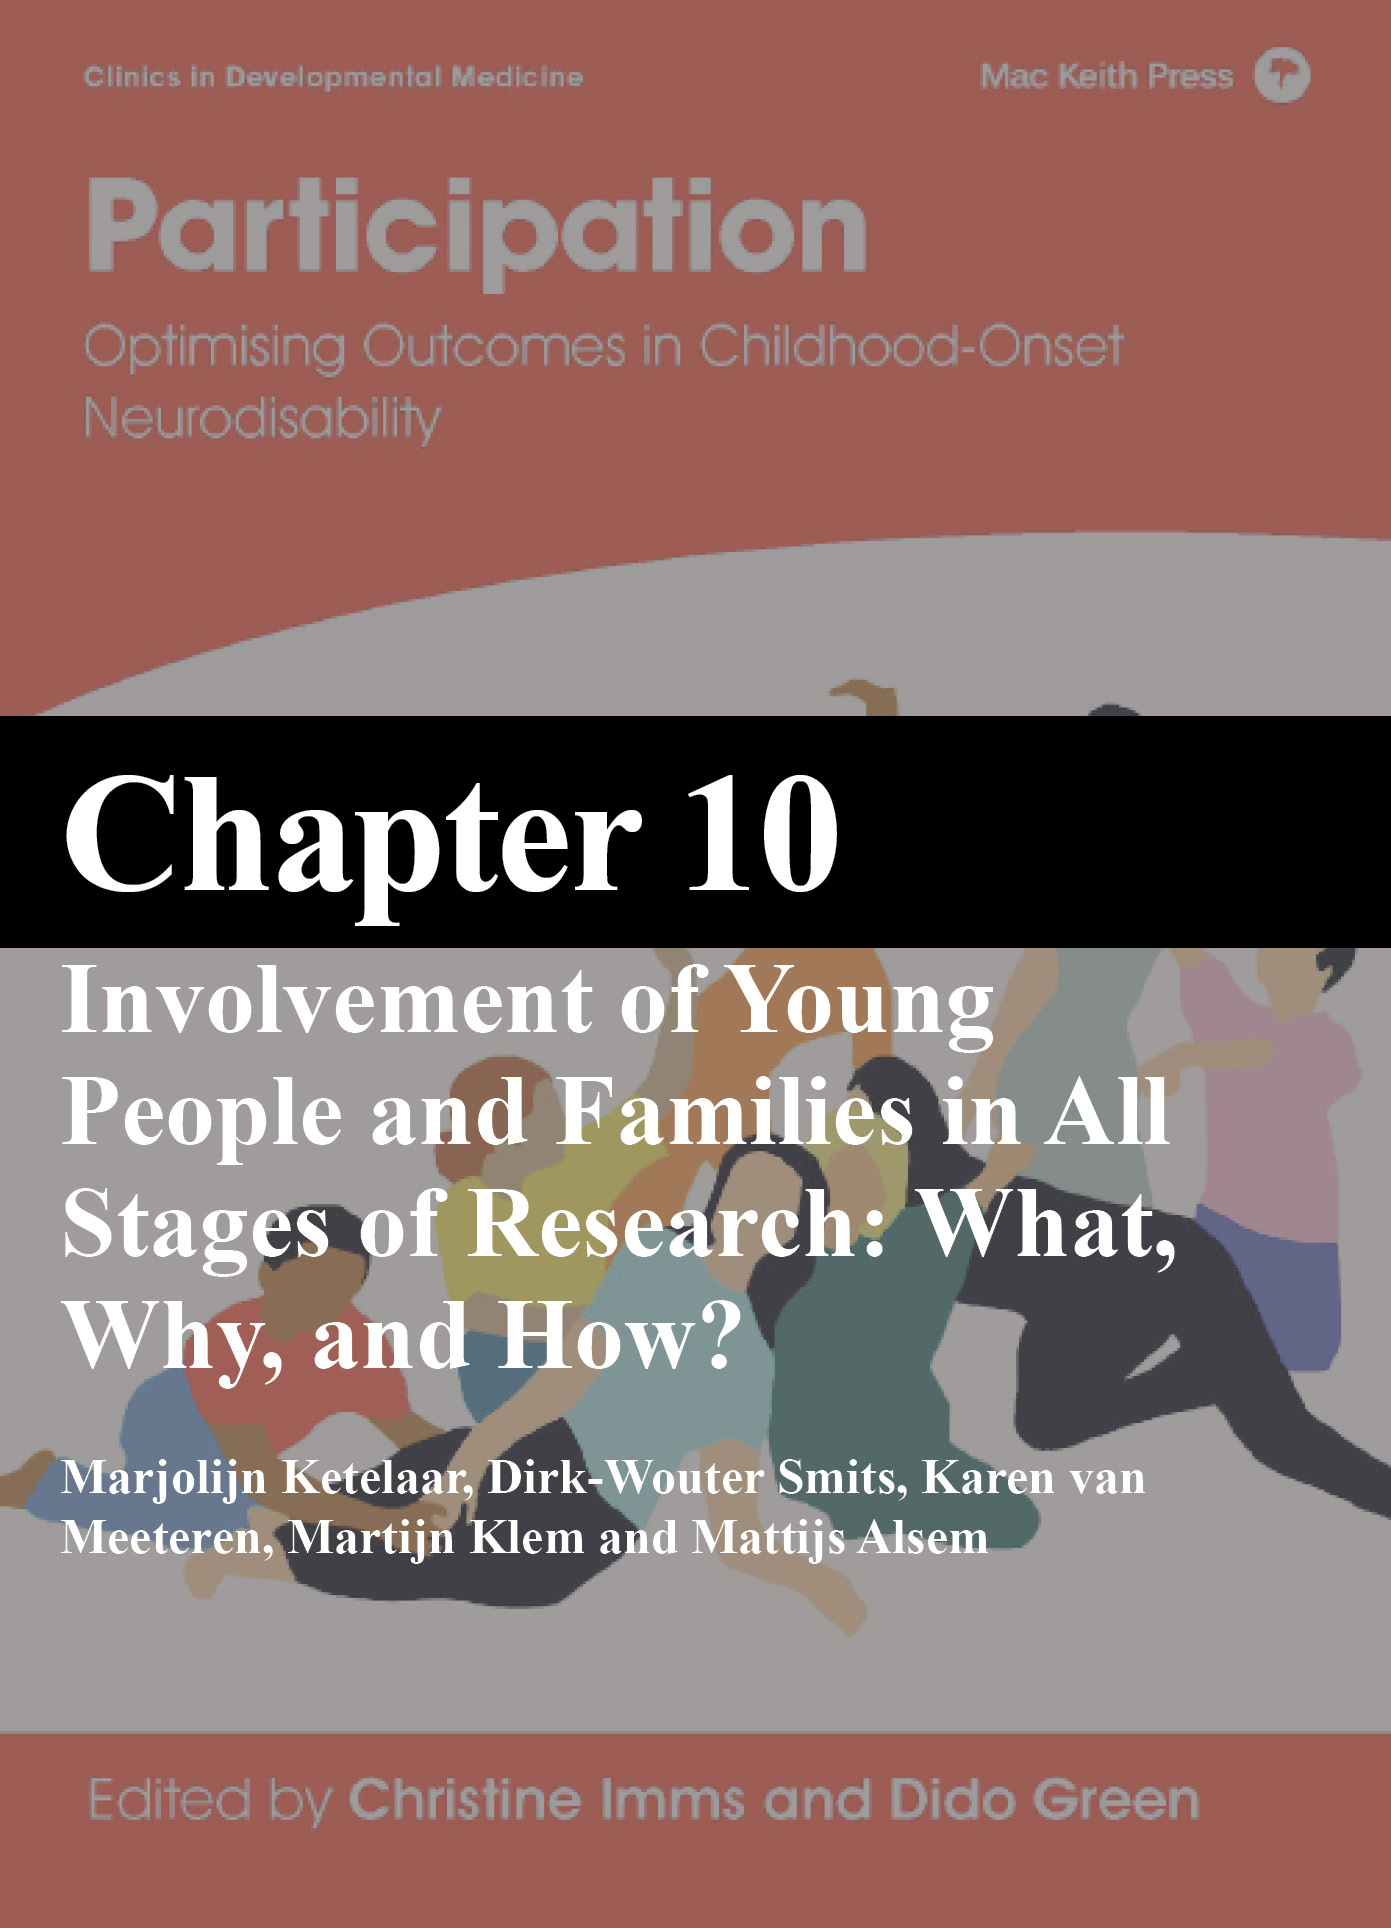 Participation Chapter 10 Imms Green